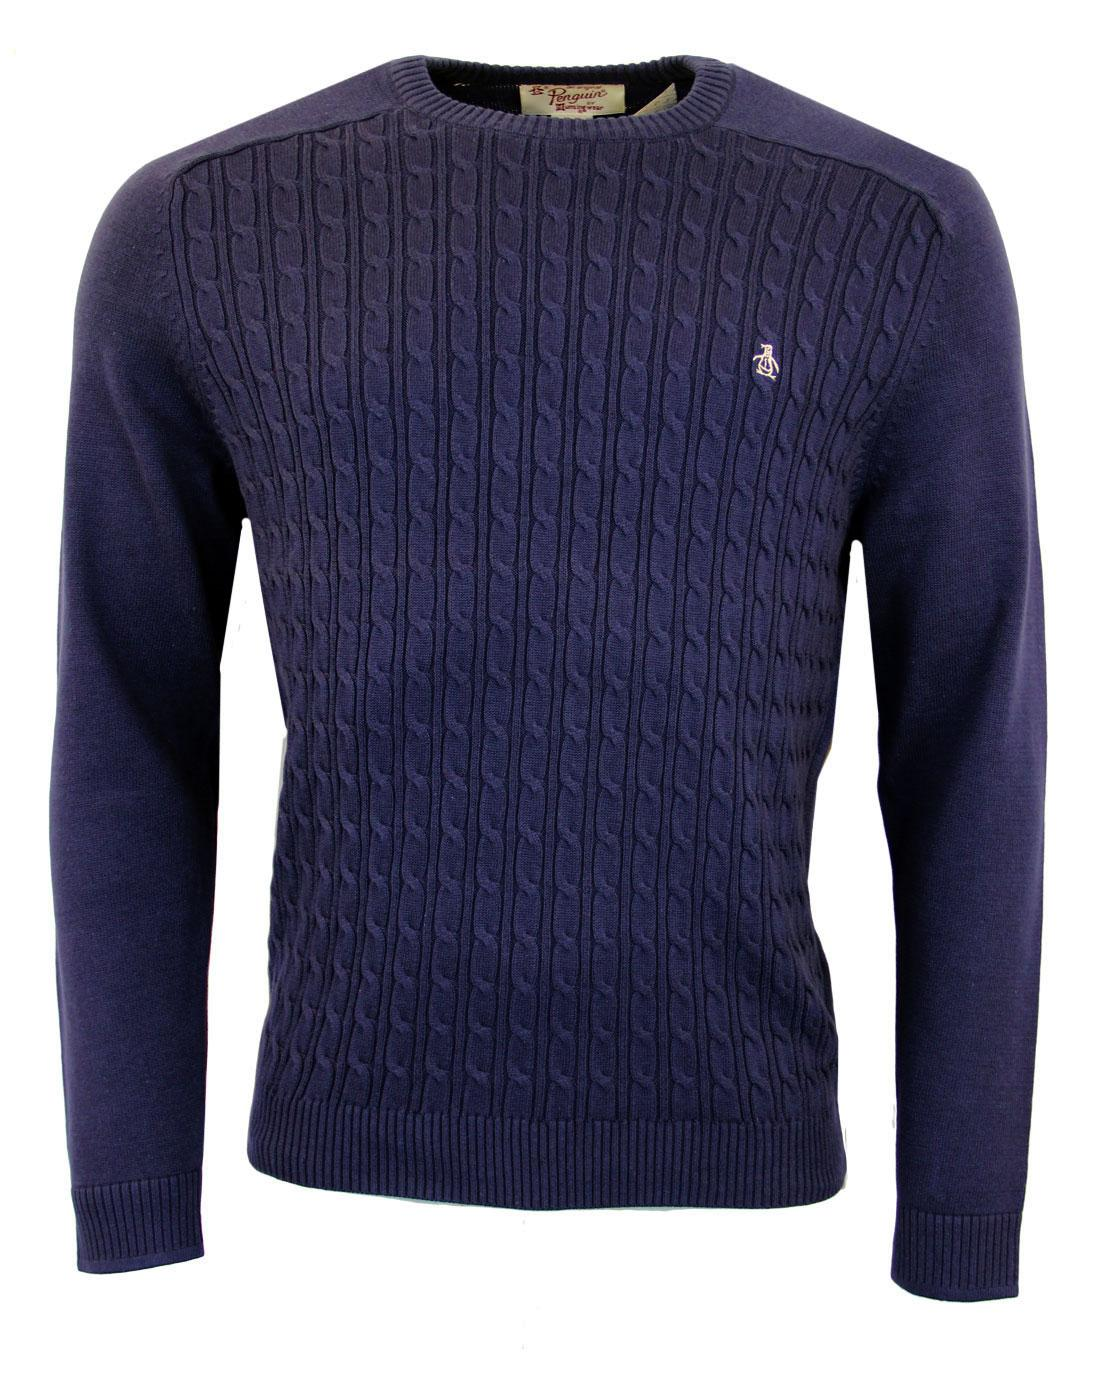 ORIGINAL PENGUIN Retro Mod Cable Knit Jumper (N)